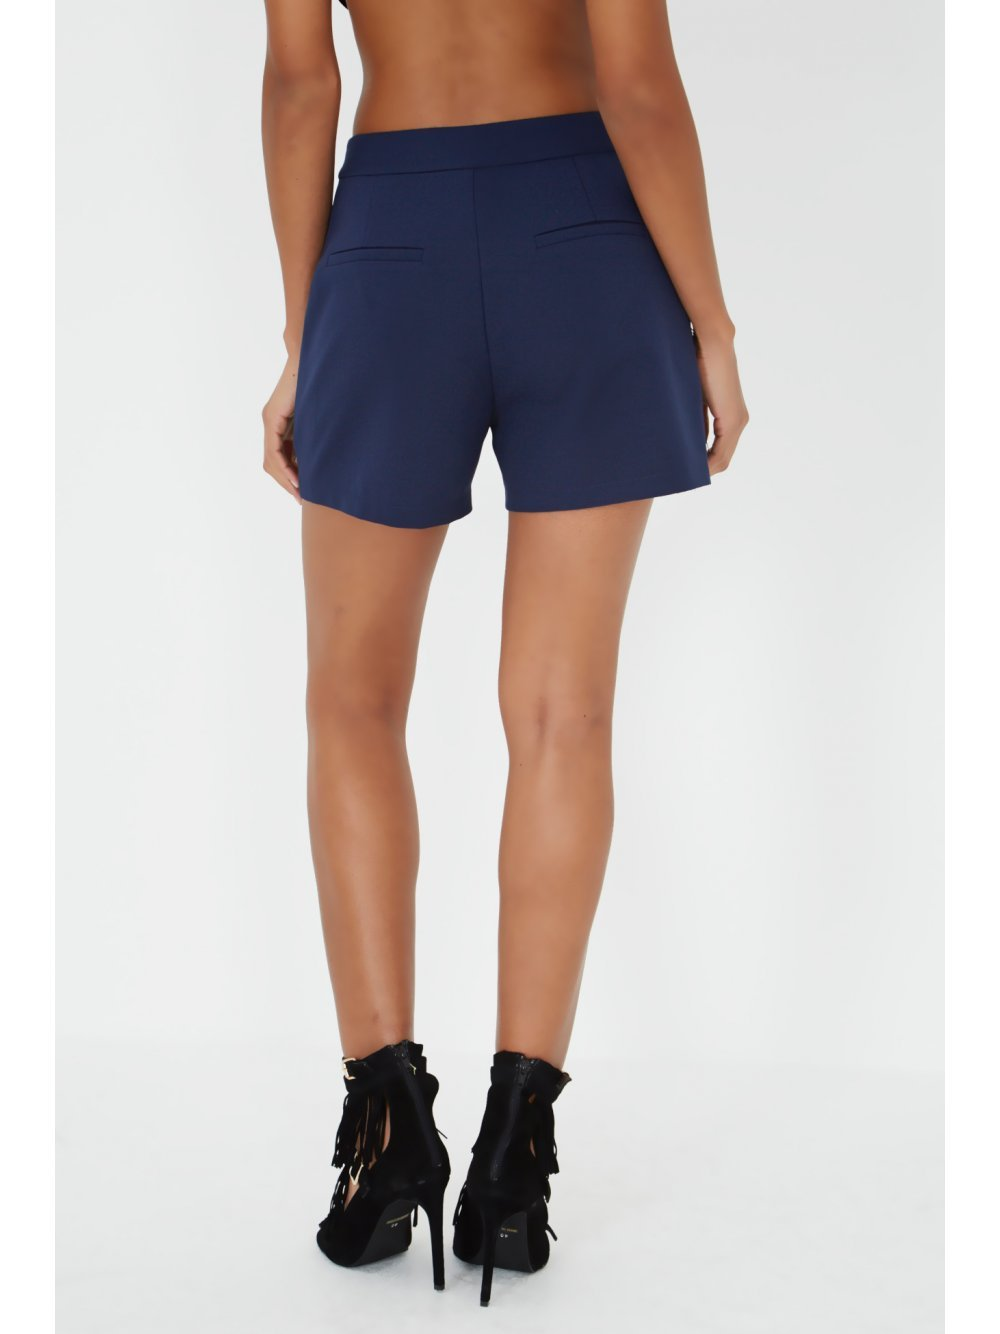 Navy & Black Tassel Shorts